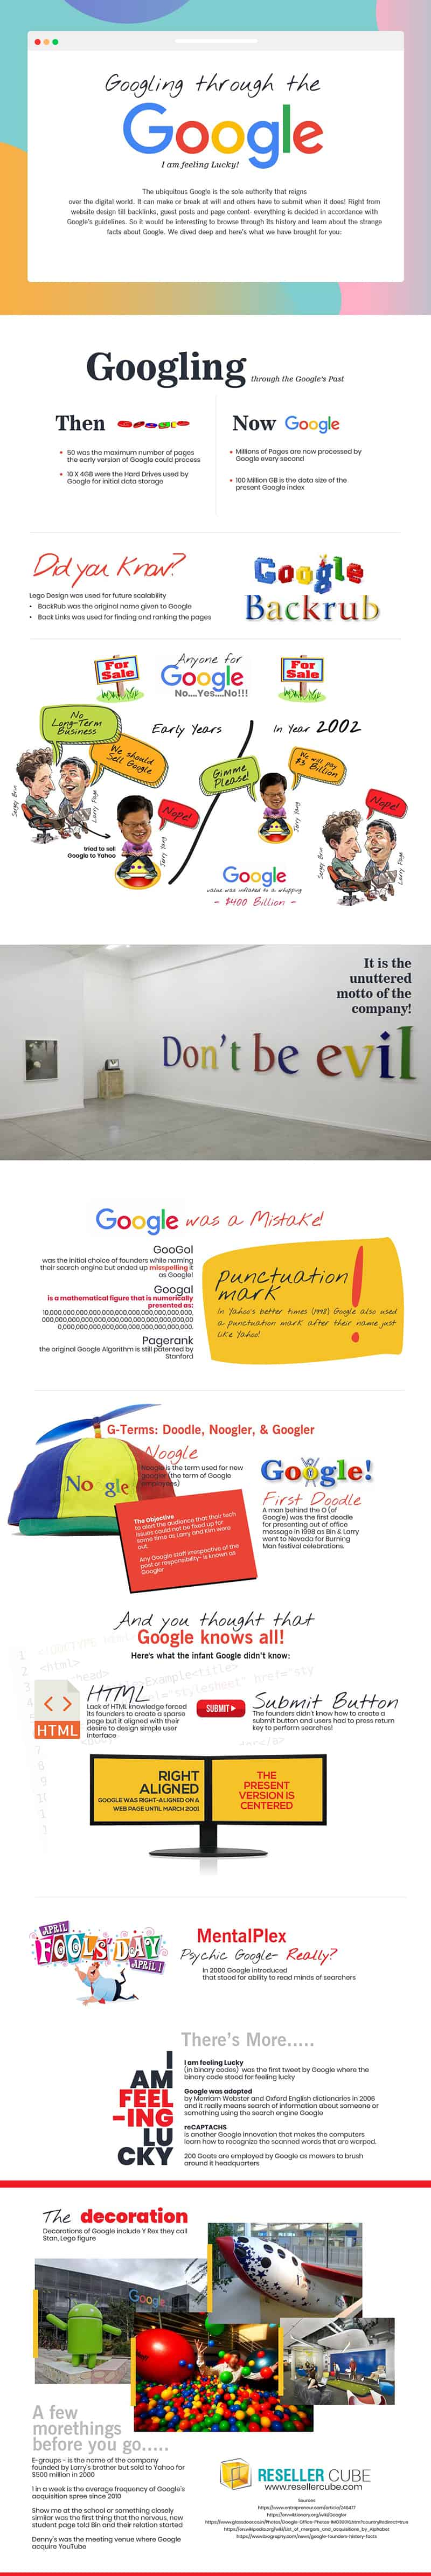 3 Lesser known facts about Google – Infographic